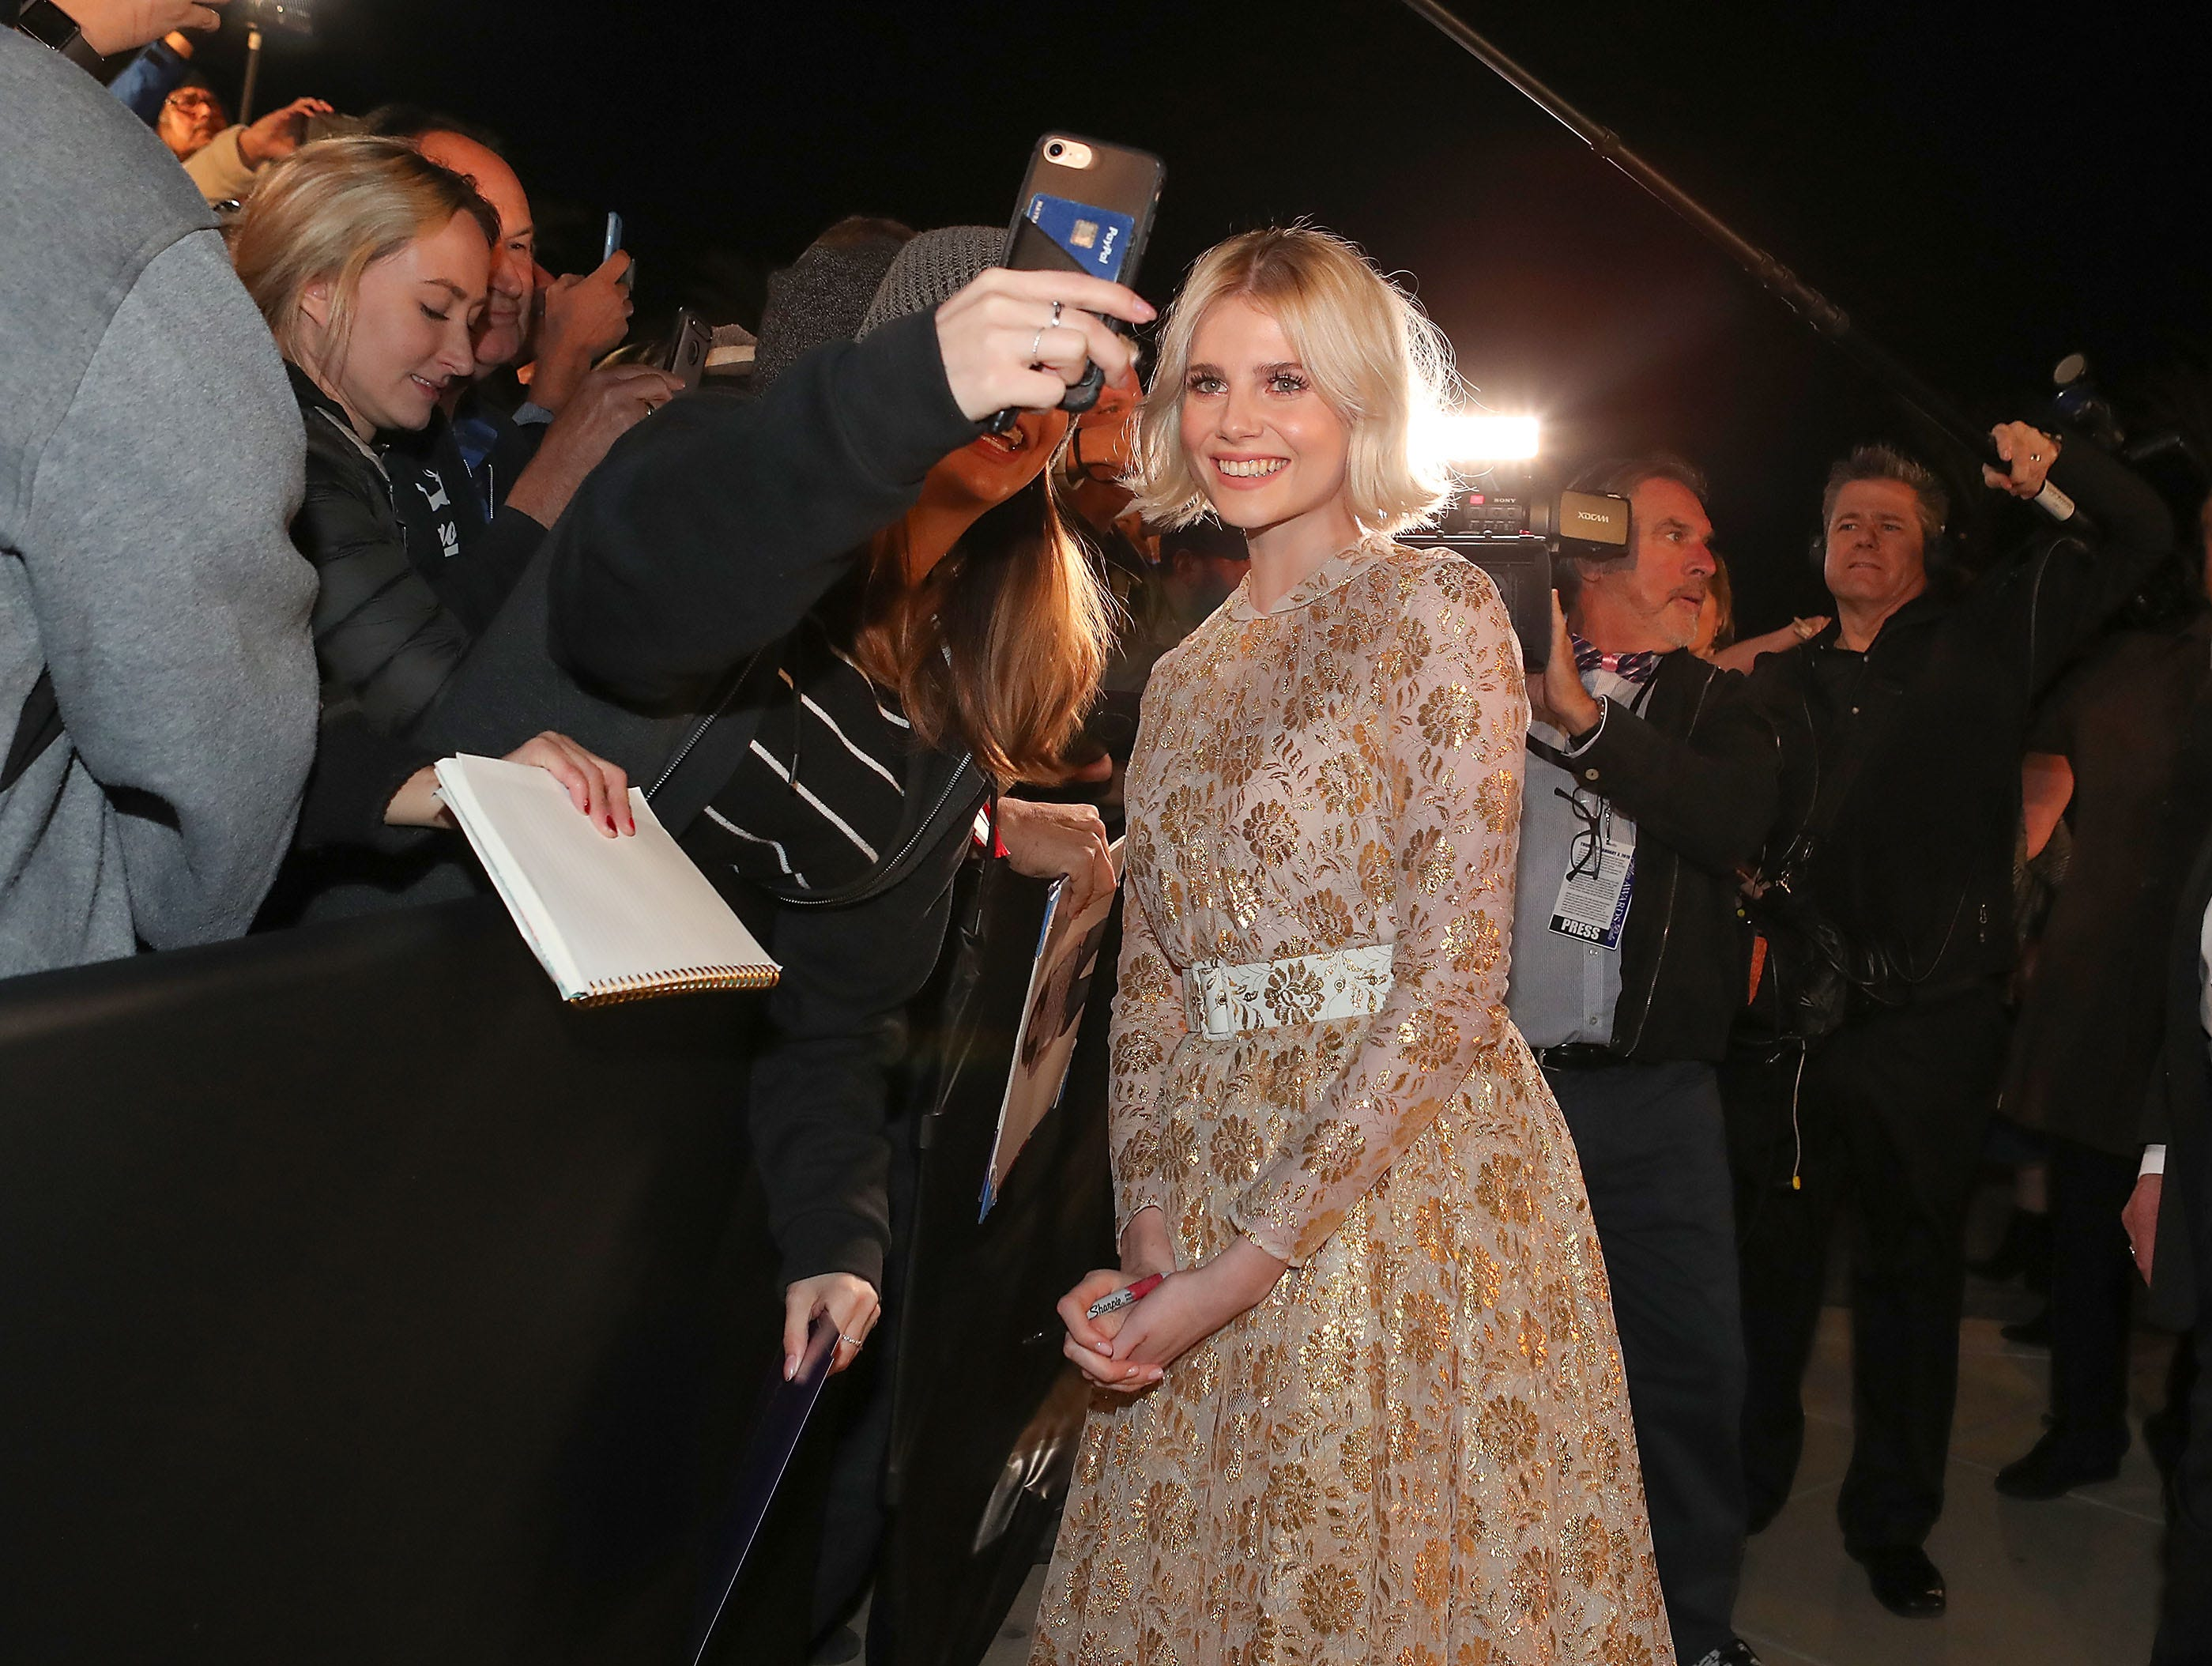 Lucy Boynton signs autographs for fans at the Palm Springs International Film Festival Awards Gala, January 3, 2019.